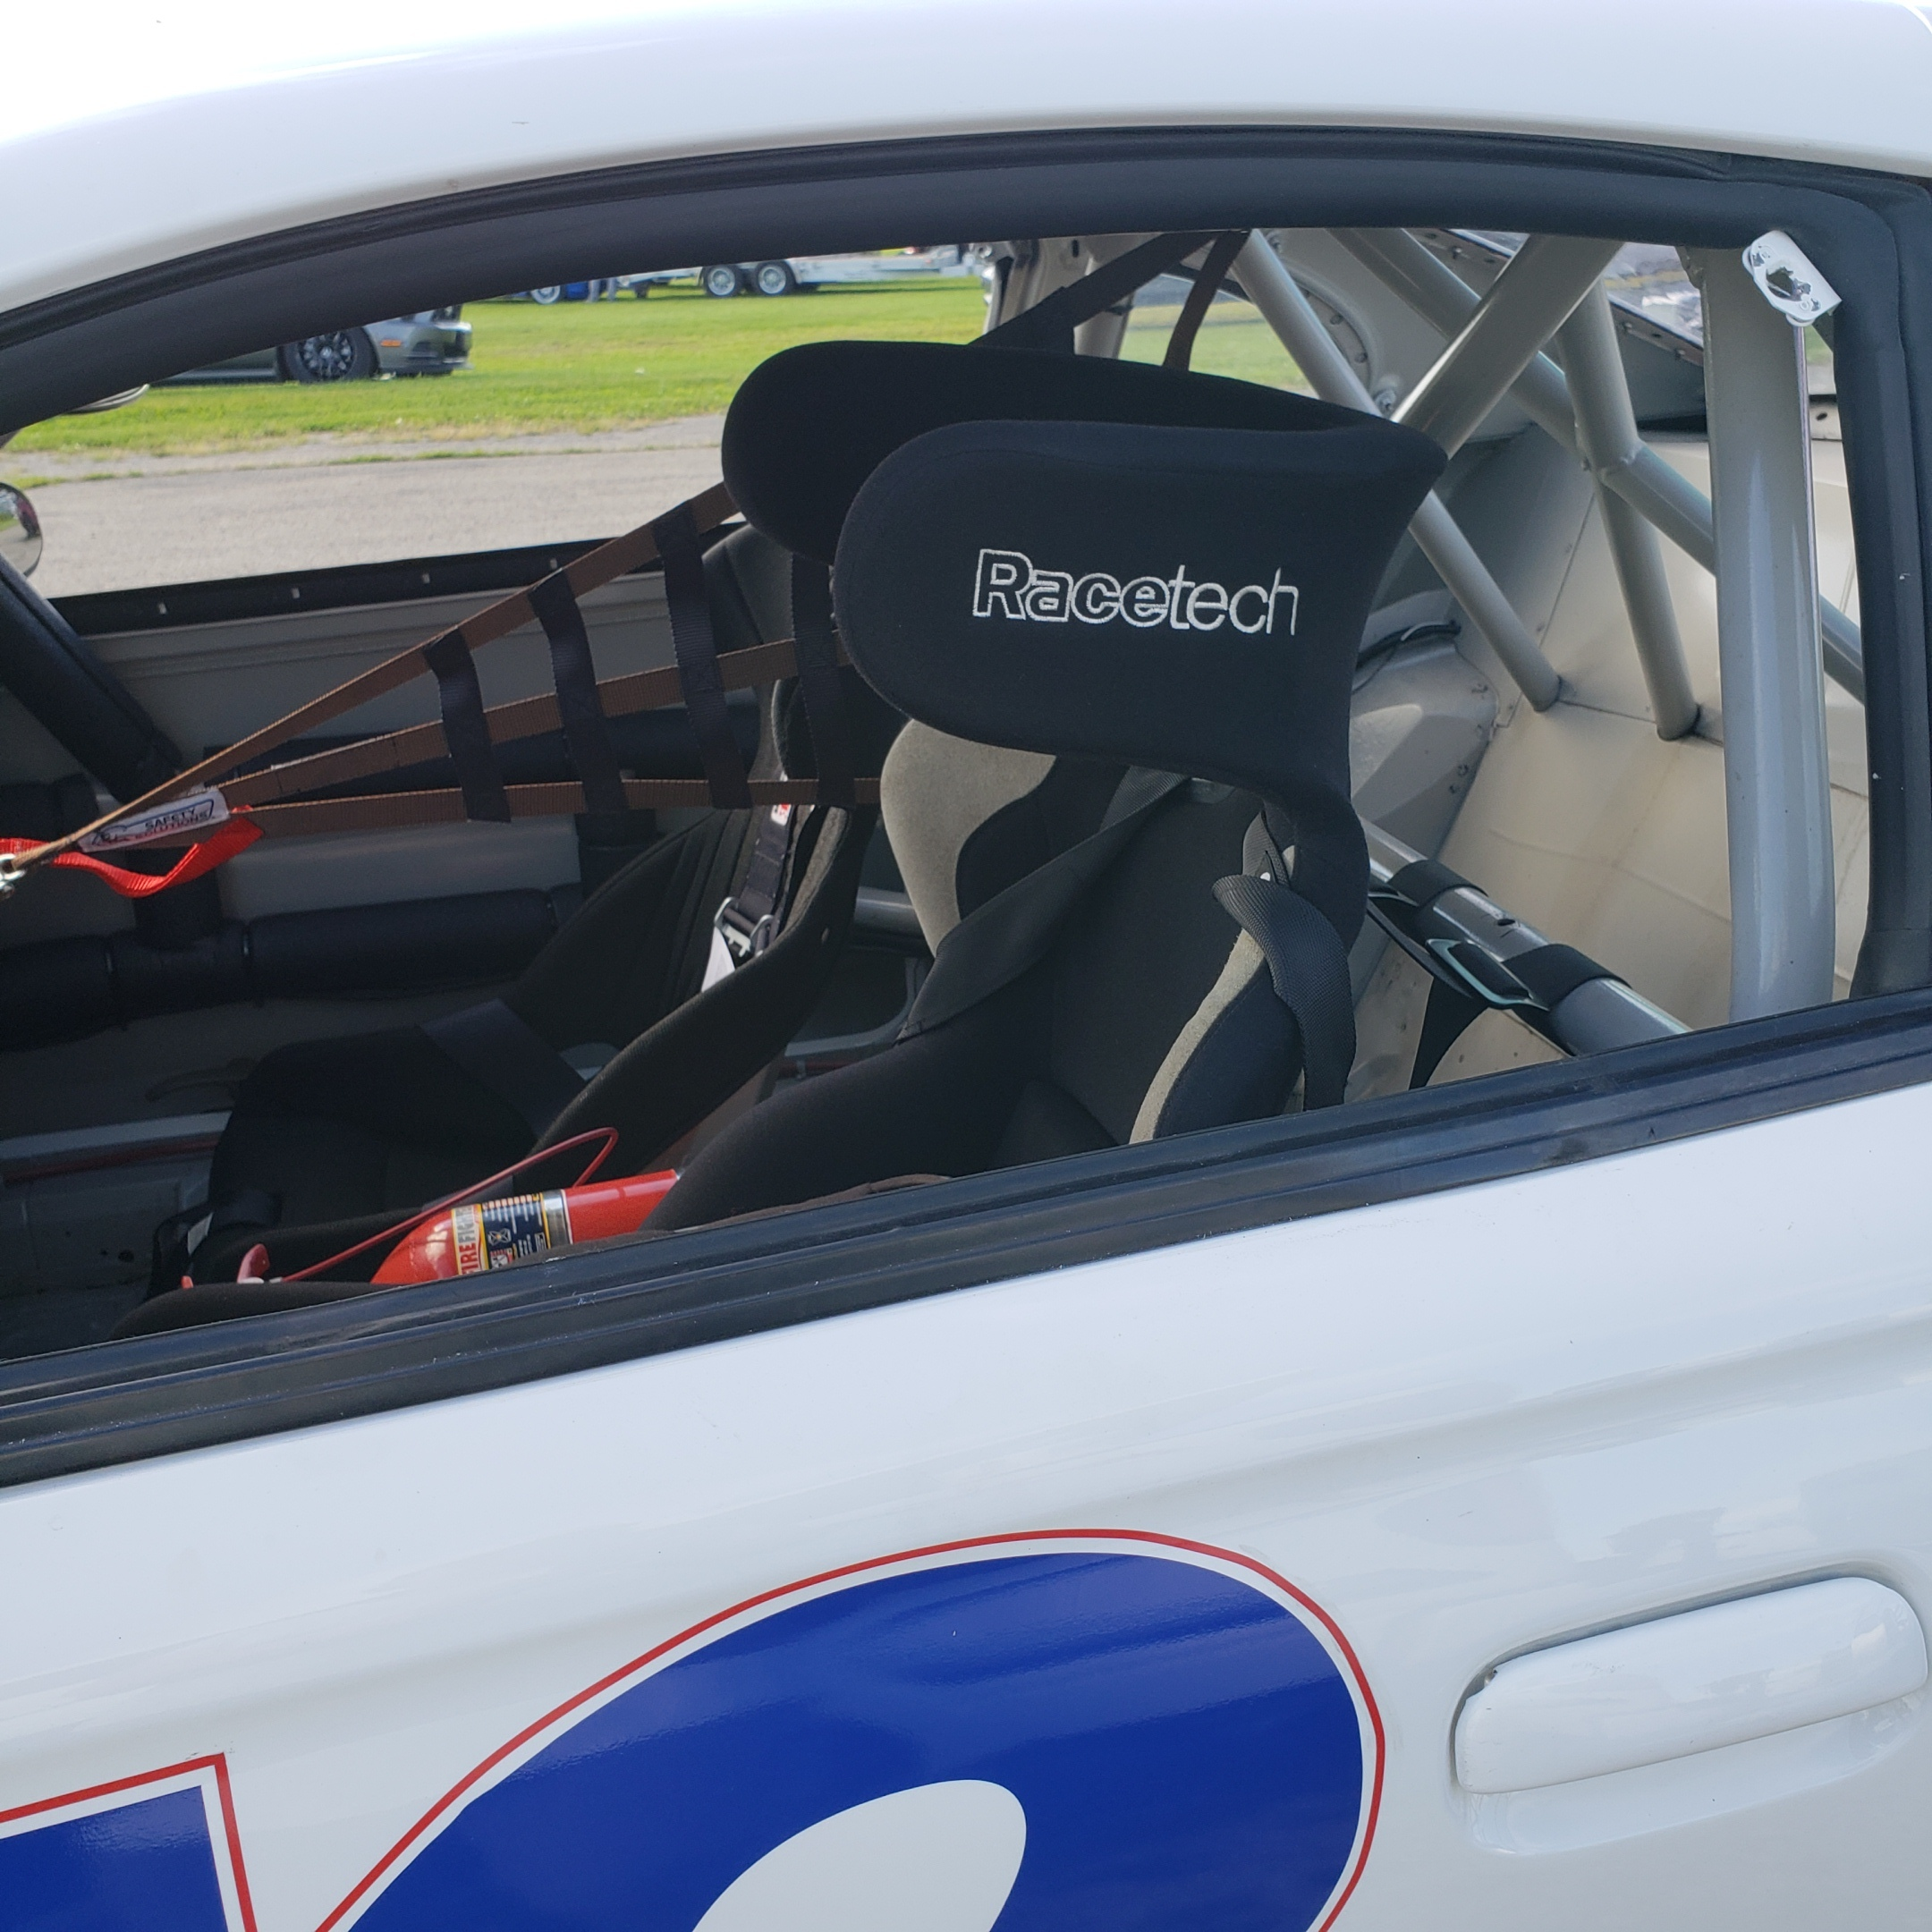 racetech inside wonderbread car 1.jpg